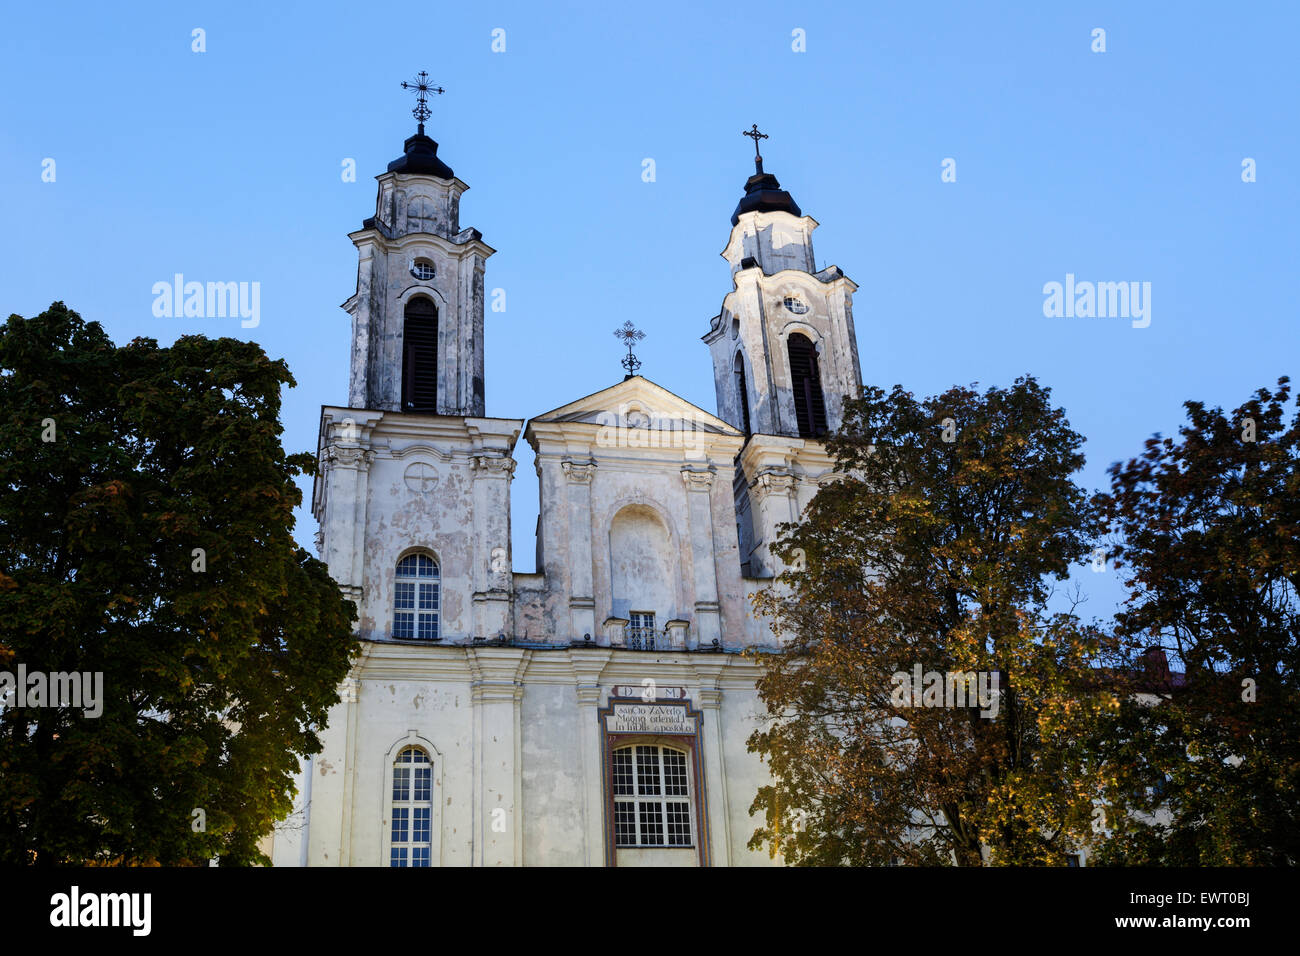 Church of St. Francis Xavier, Kaunas, Lithuania. - Stock Image